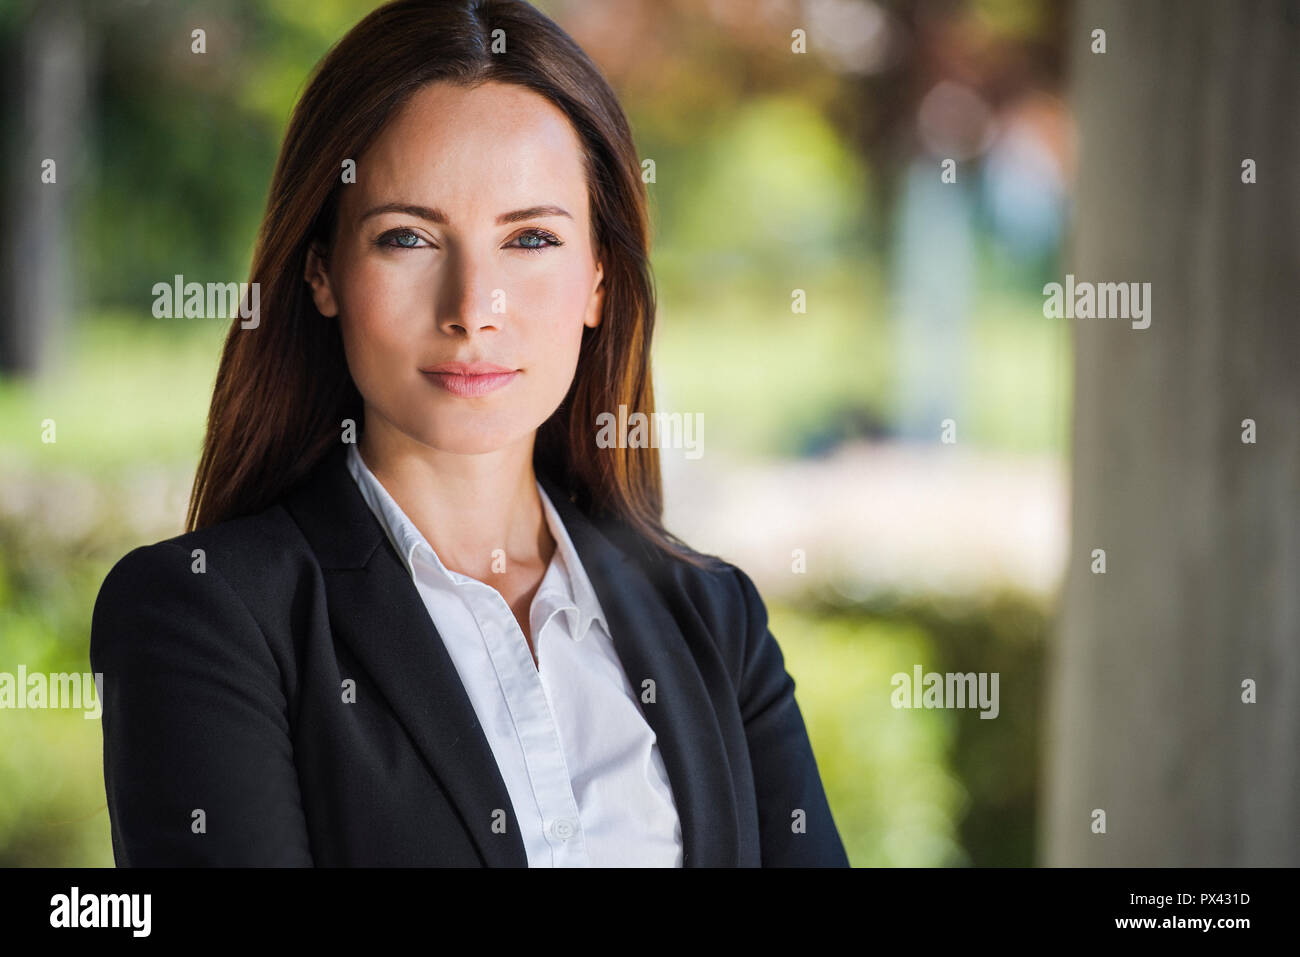 Business woman with crossed arms smiling. With copy space. - Stock Image